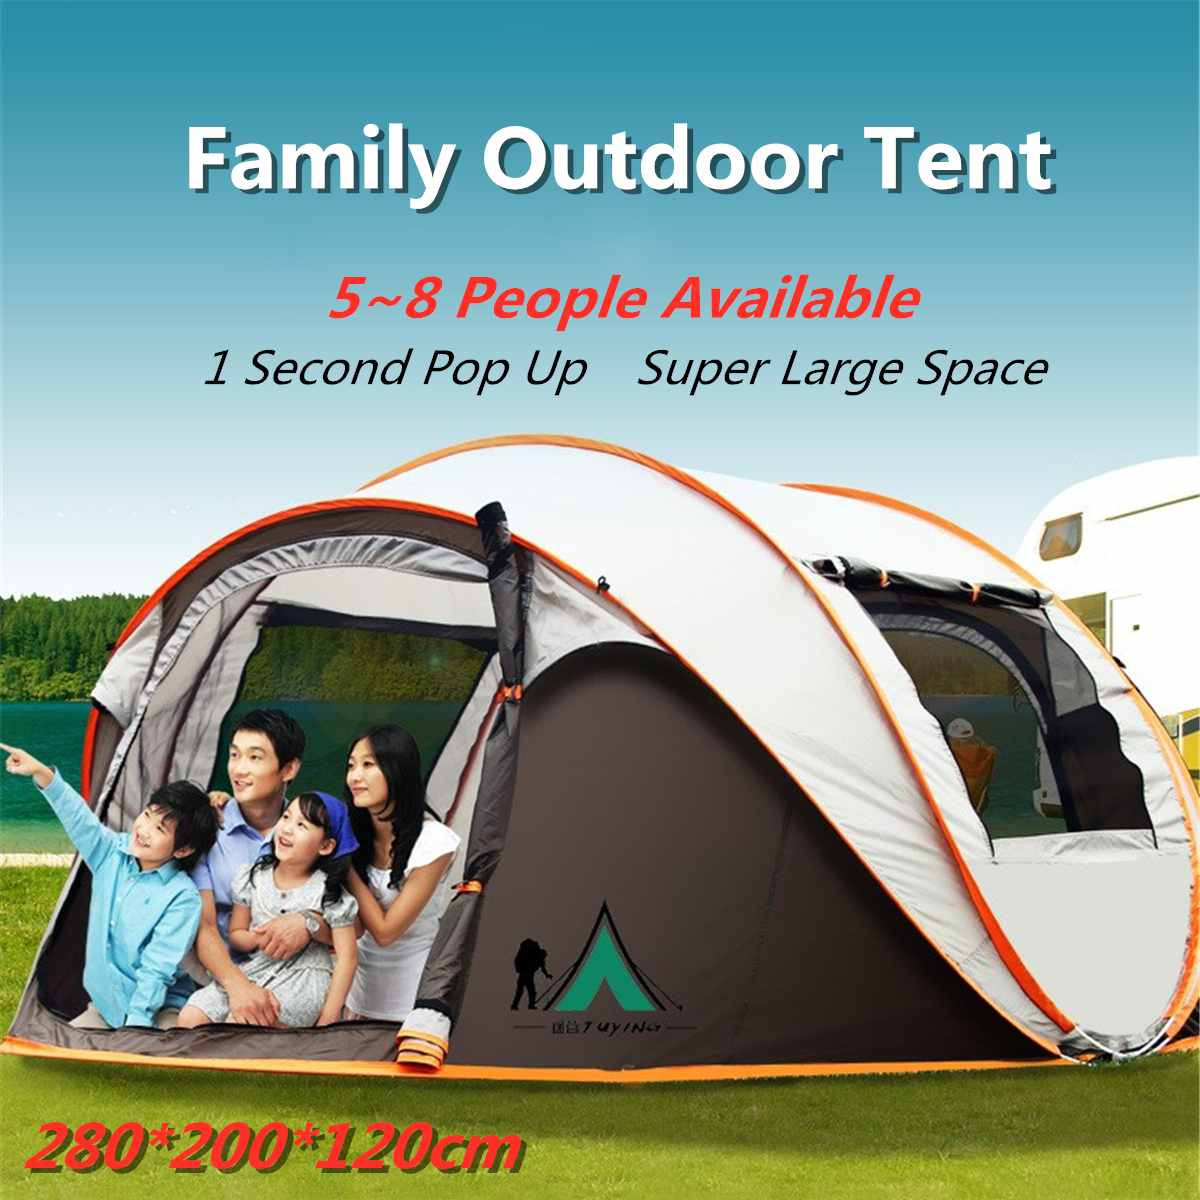 Throw Tent Outdoor Automatic Tents Waterproof Camping Hiking Climbing Waterproof 5-8 People Large Family Tents Large SpaceThrow Tent Outdoor Automatic Tents Waterproof Camping Hiking Climbing Waterproof 5-8 People Large Family Tents Large Space